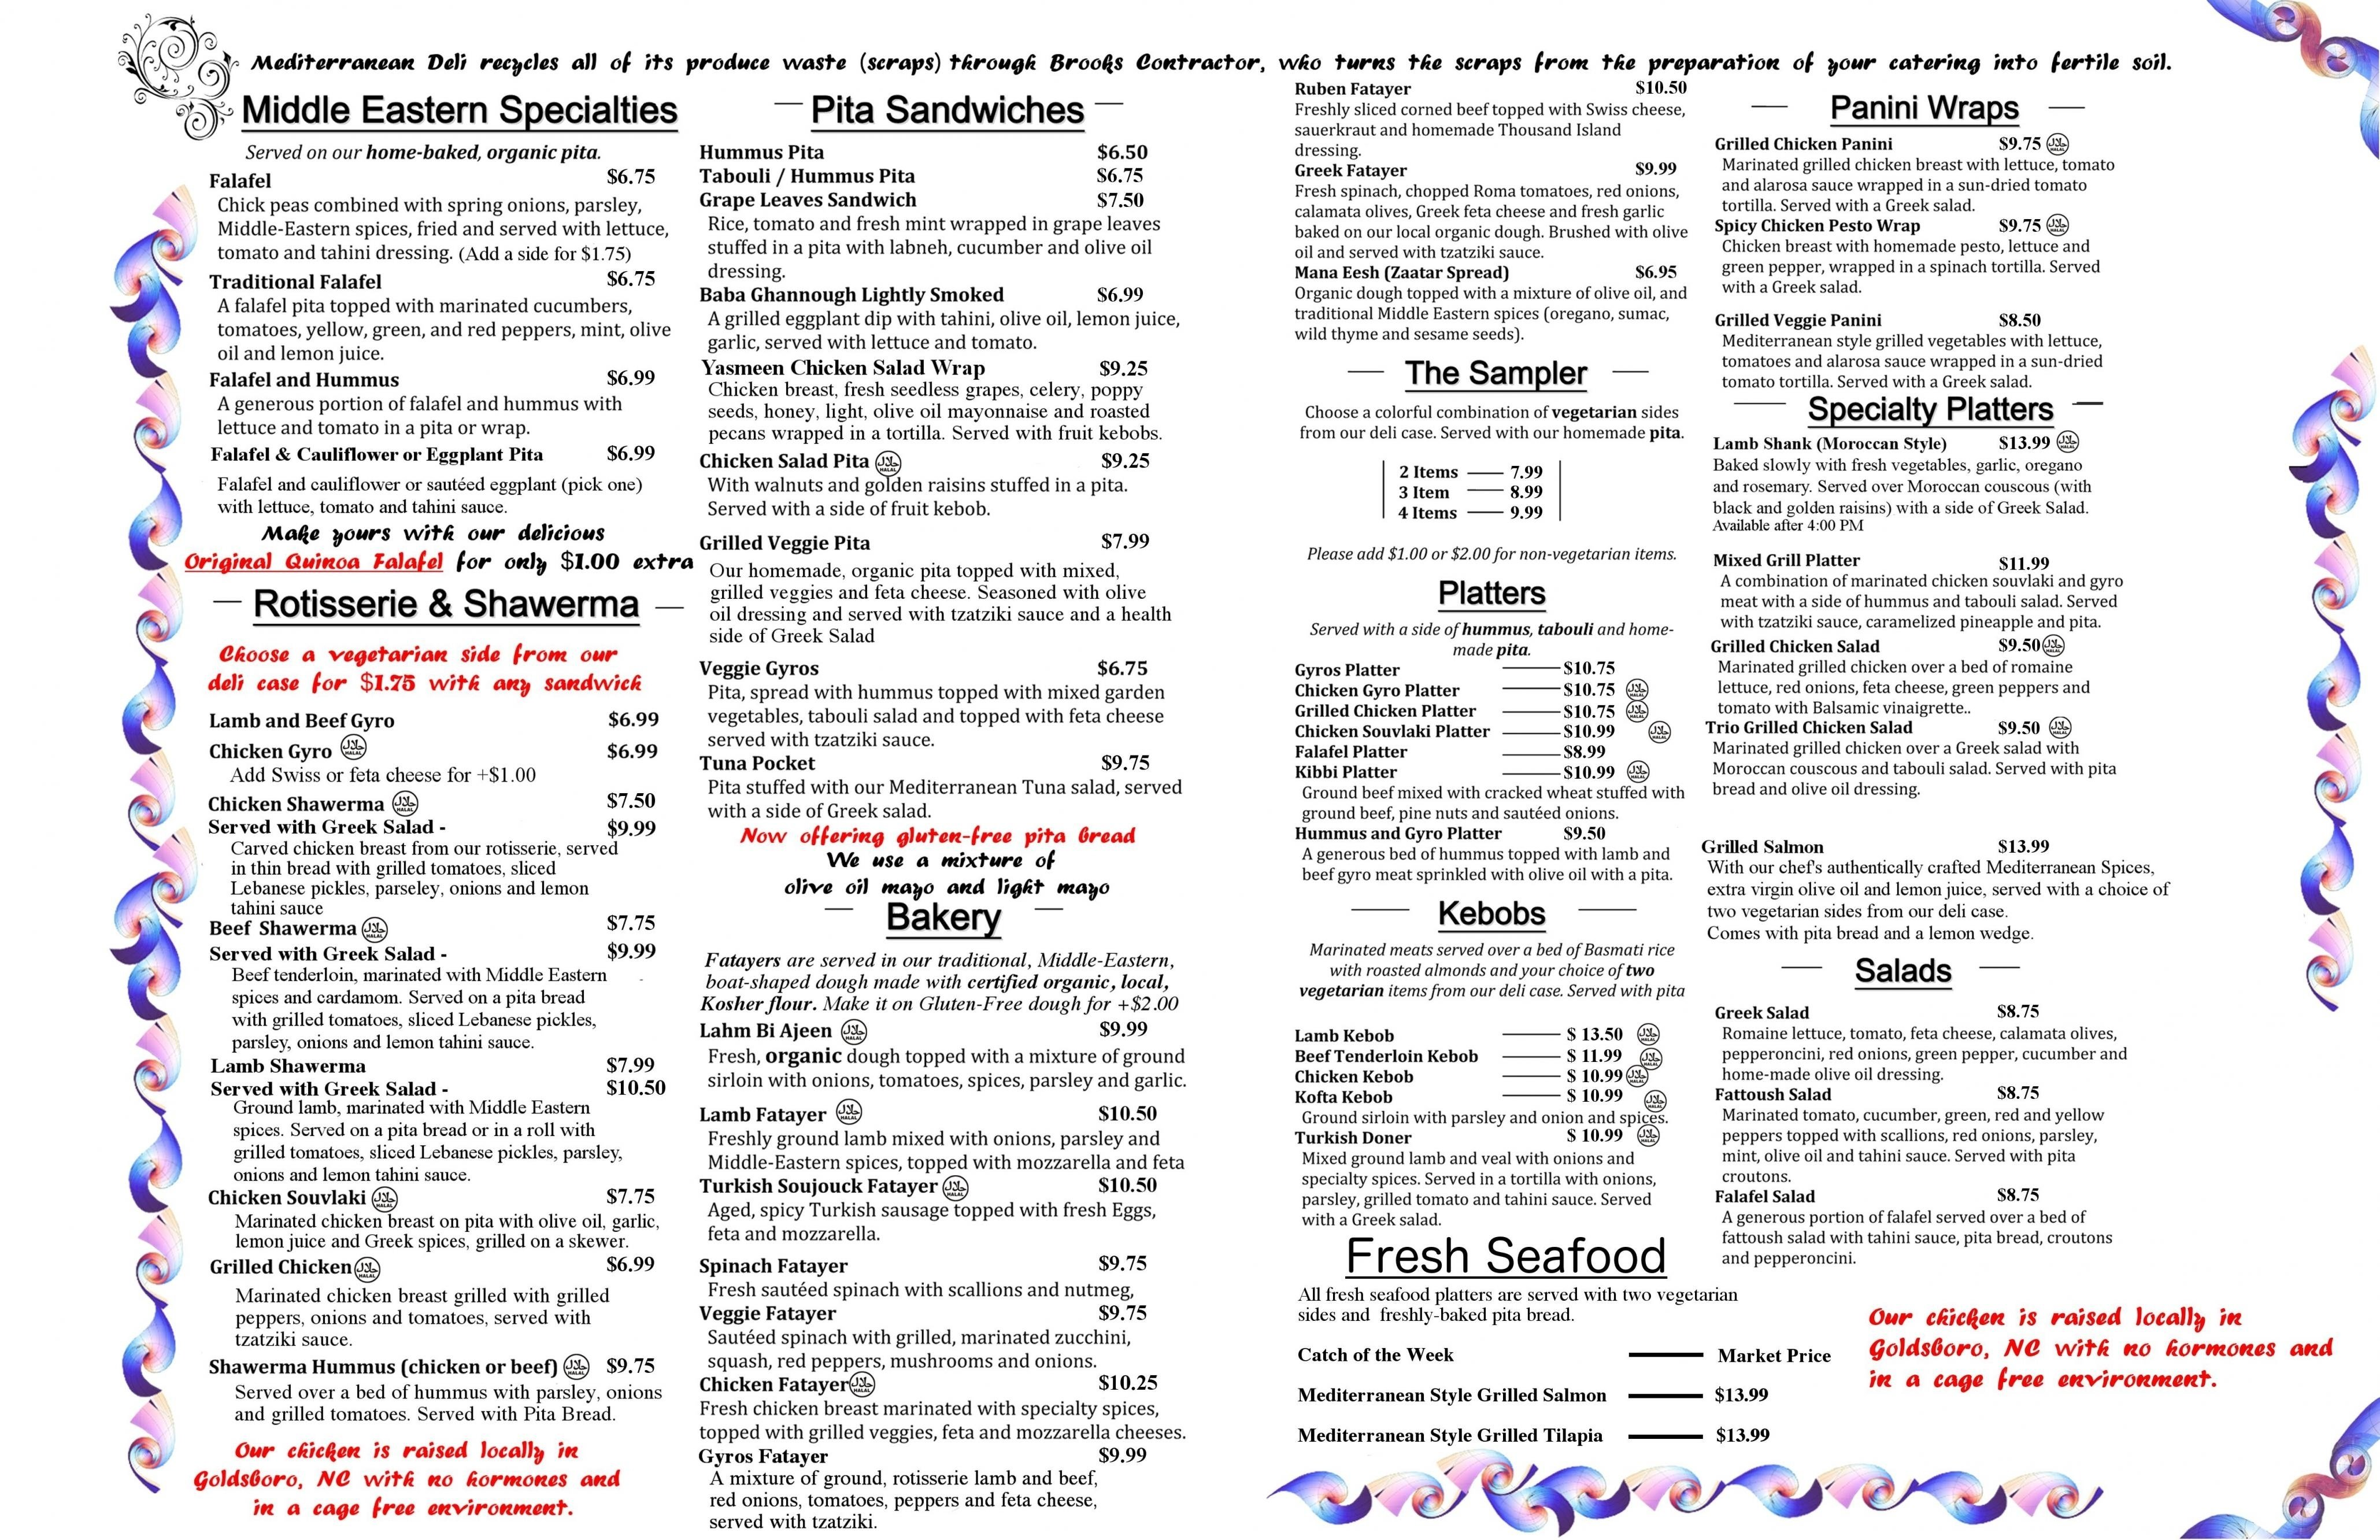 10 Cute Catering Menus And Prices Ideas marvelous garden catering menu 85 about remodel perfect home remodel